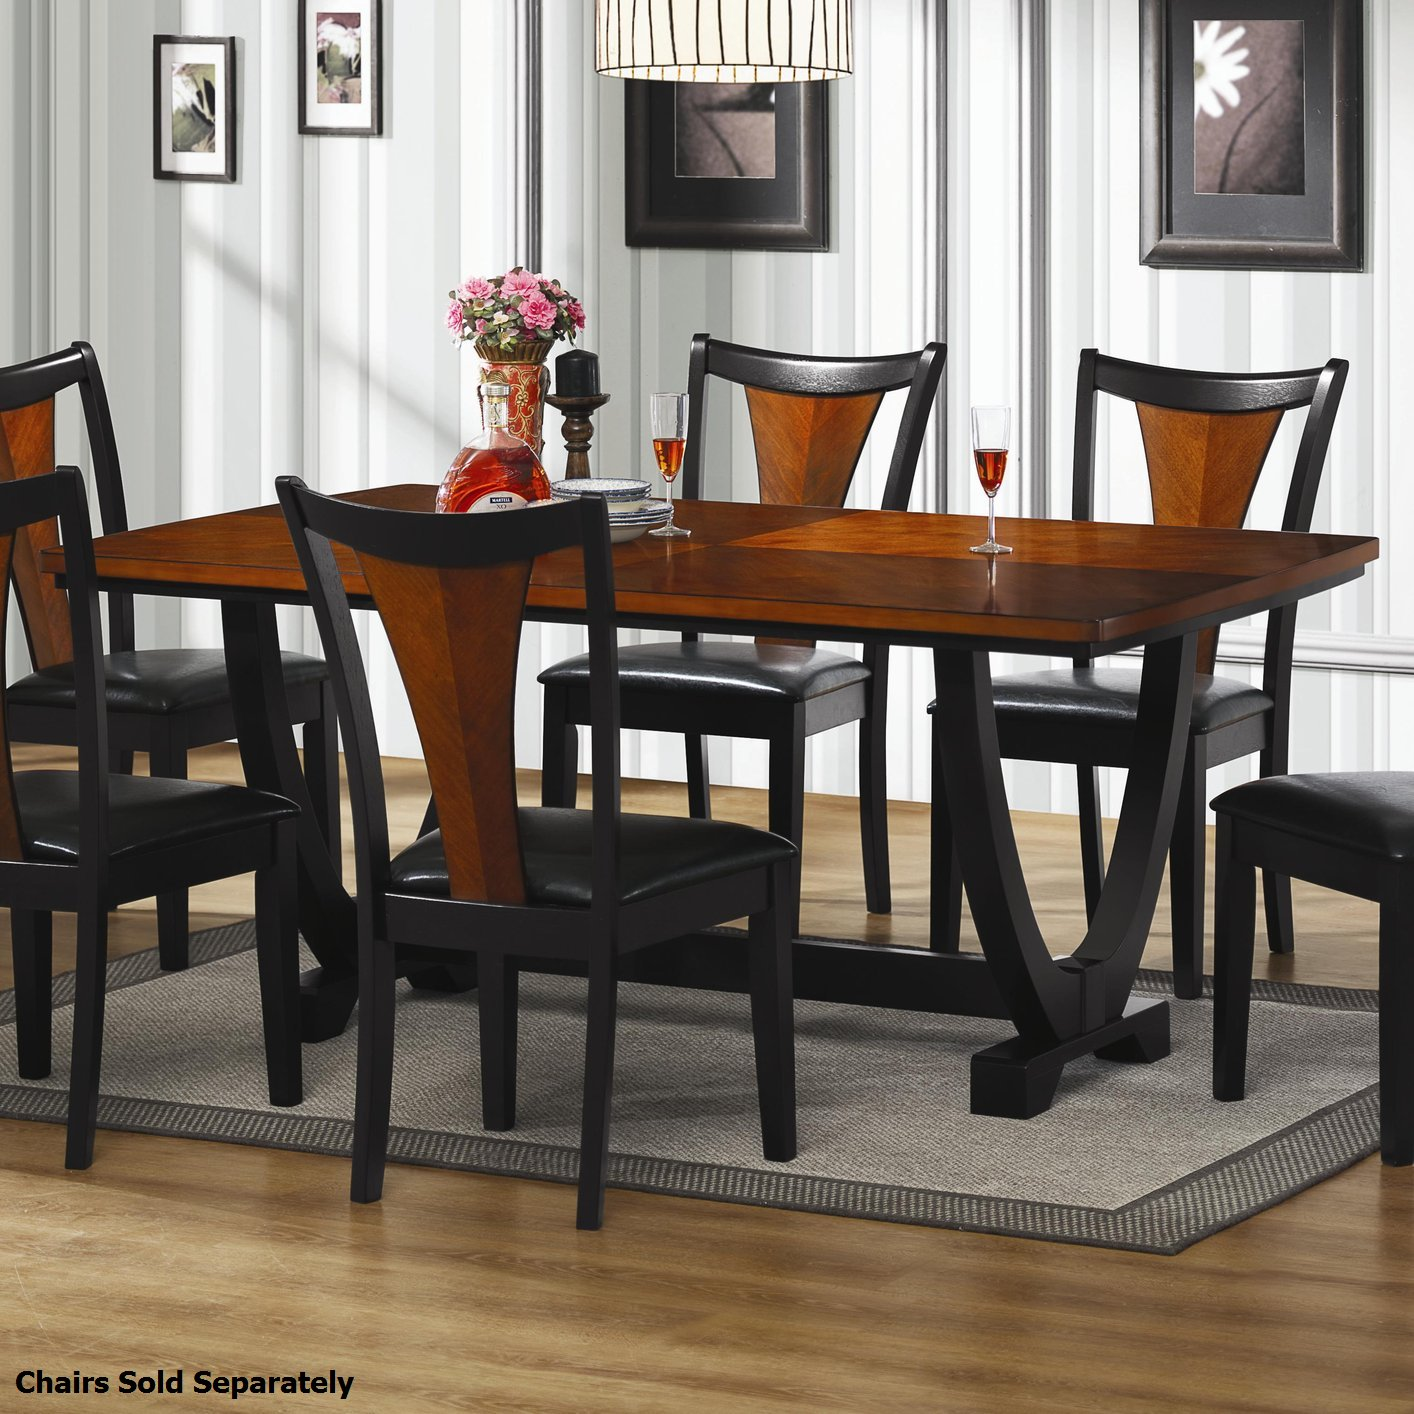 High Quality Black Wood Dining Table